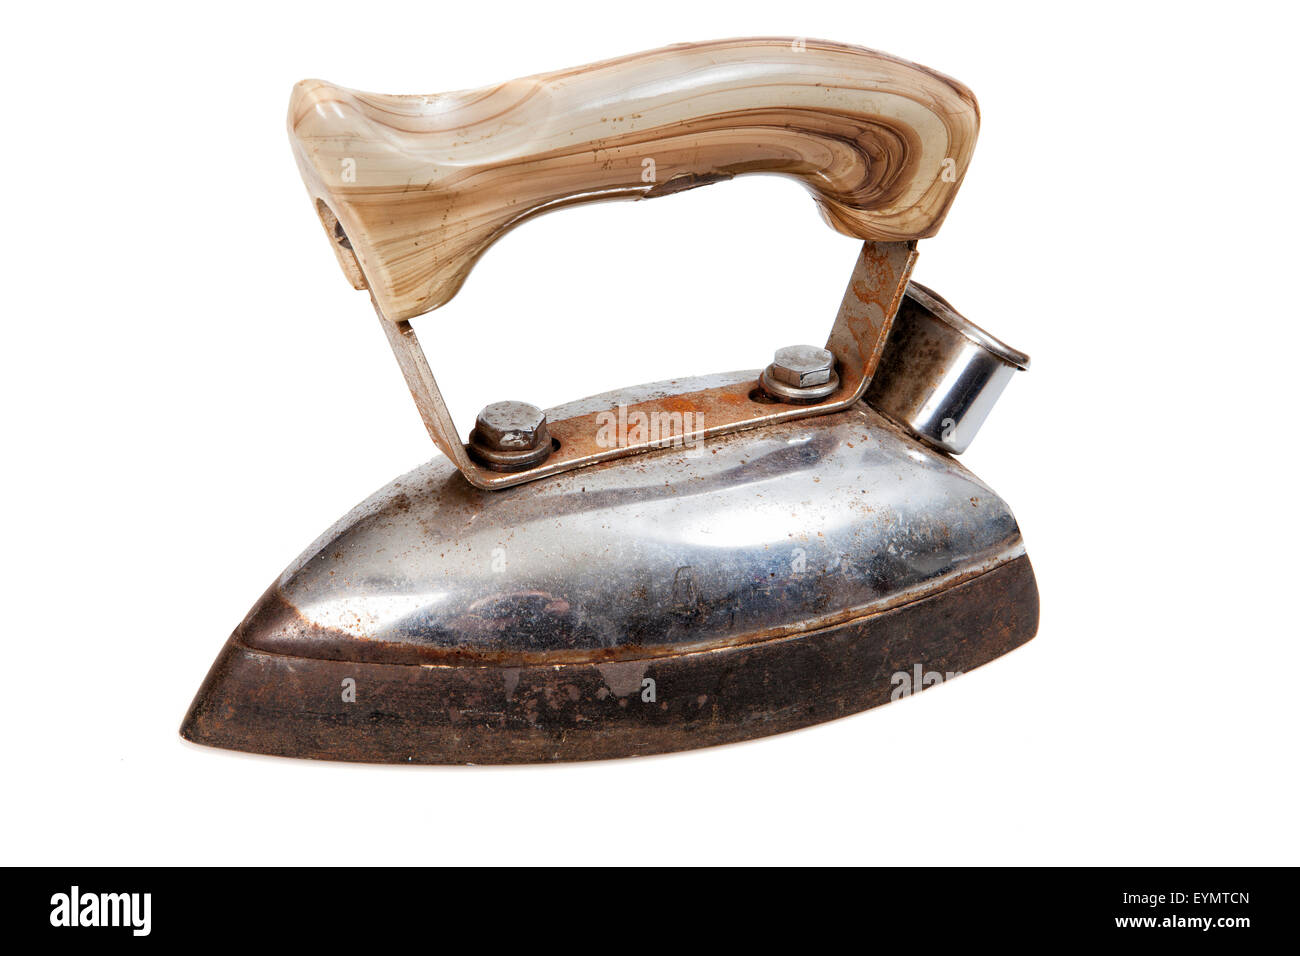 Antique iron - Stock Image